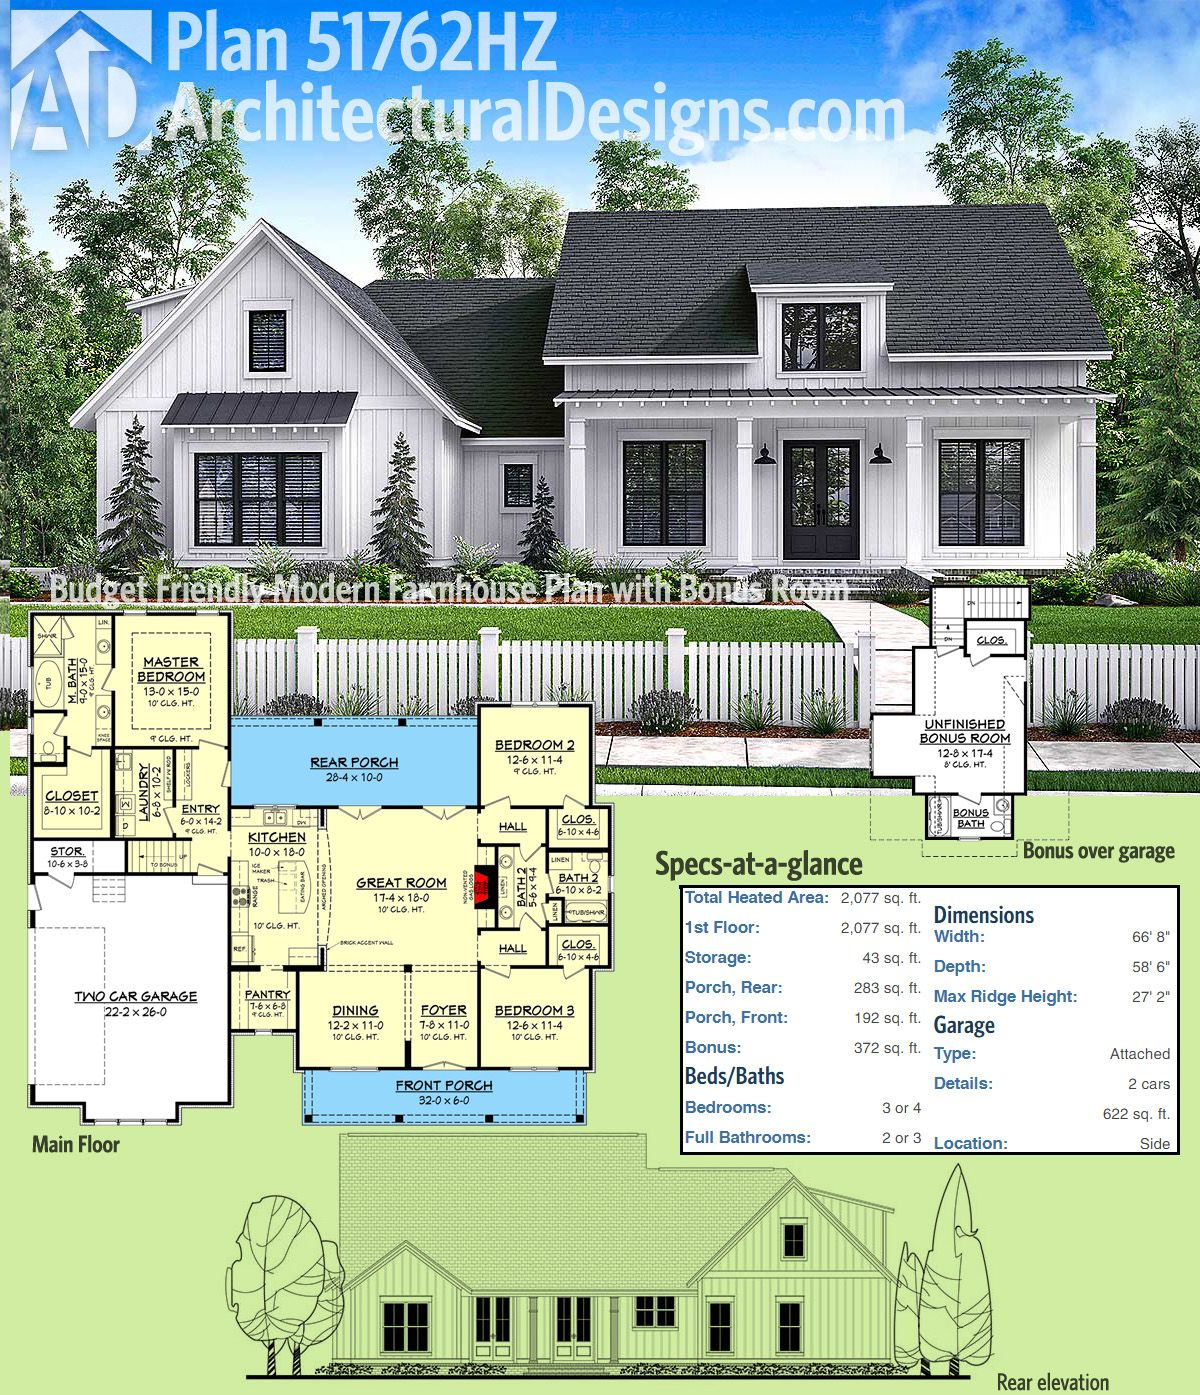 Plan 51762hz budget friendly modern farmhouse plan with for Farm house plans with photos